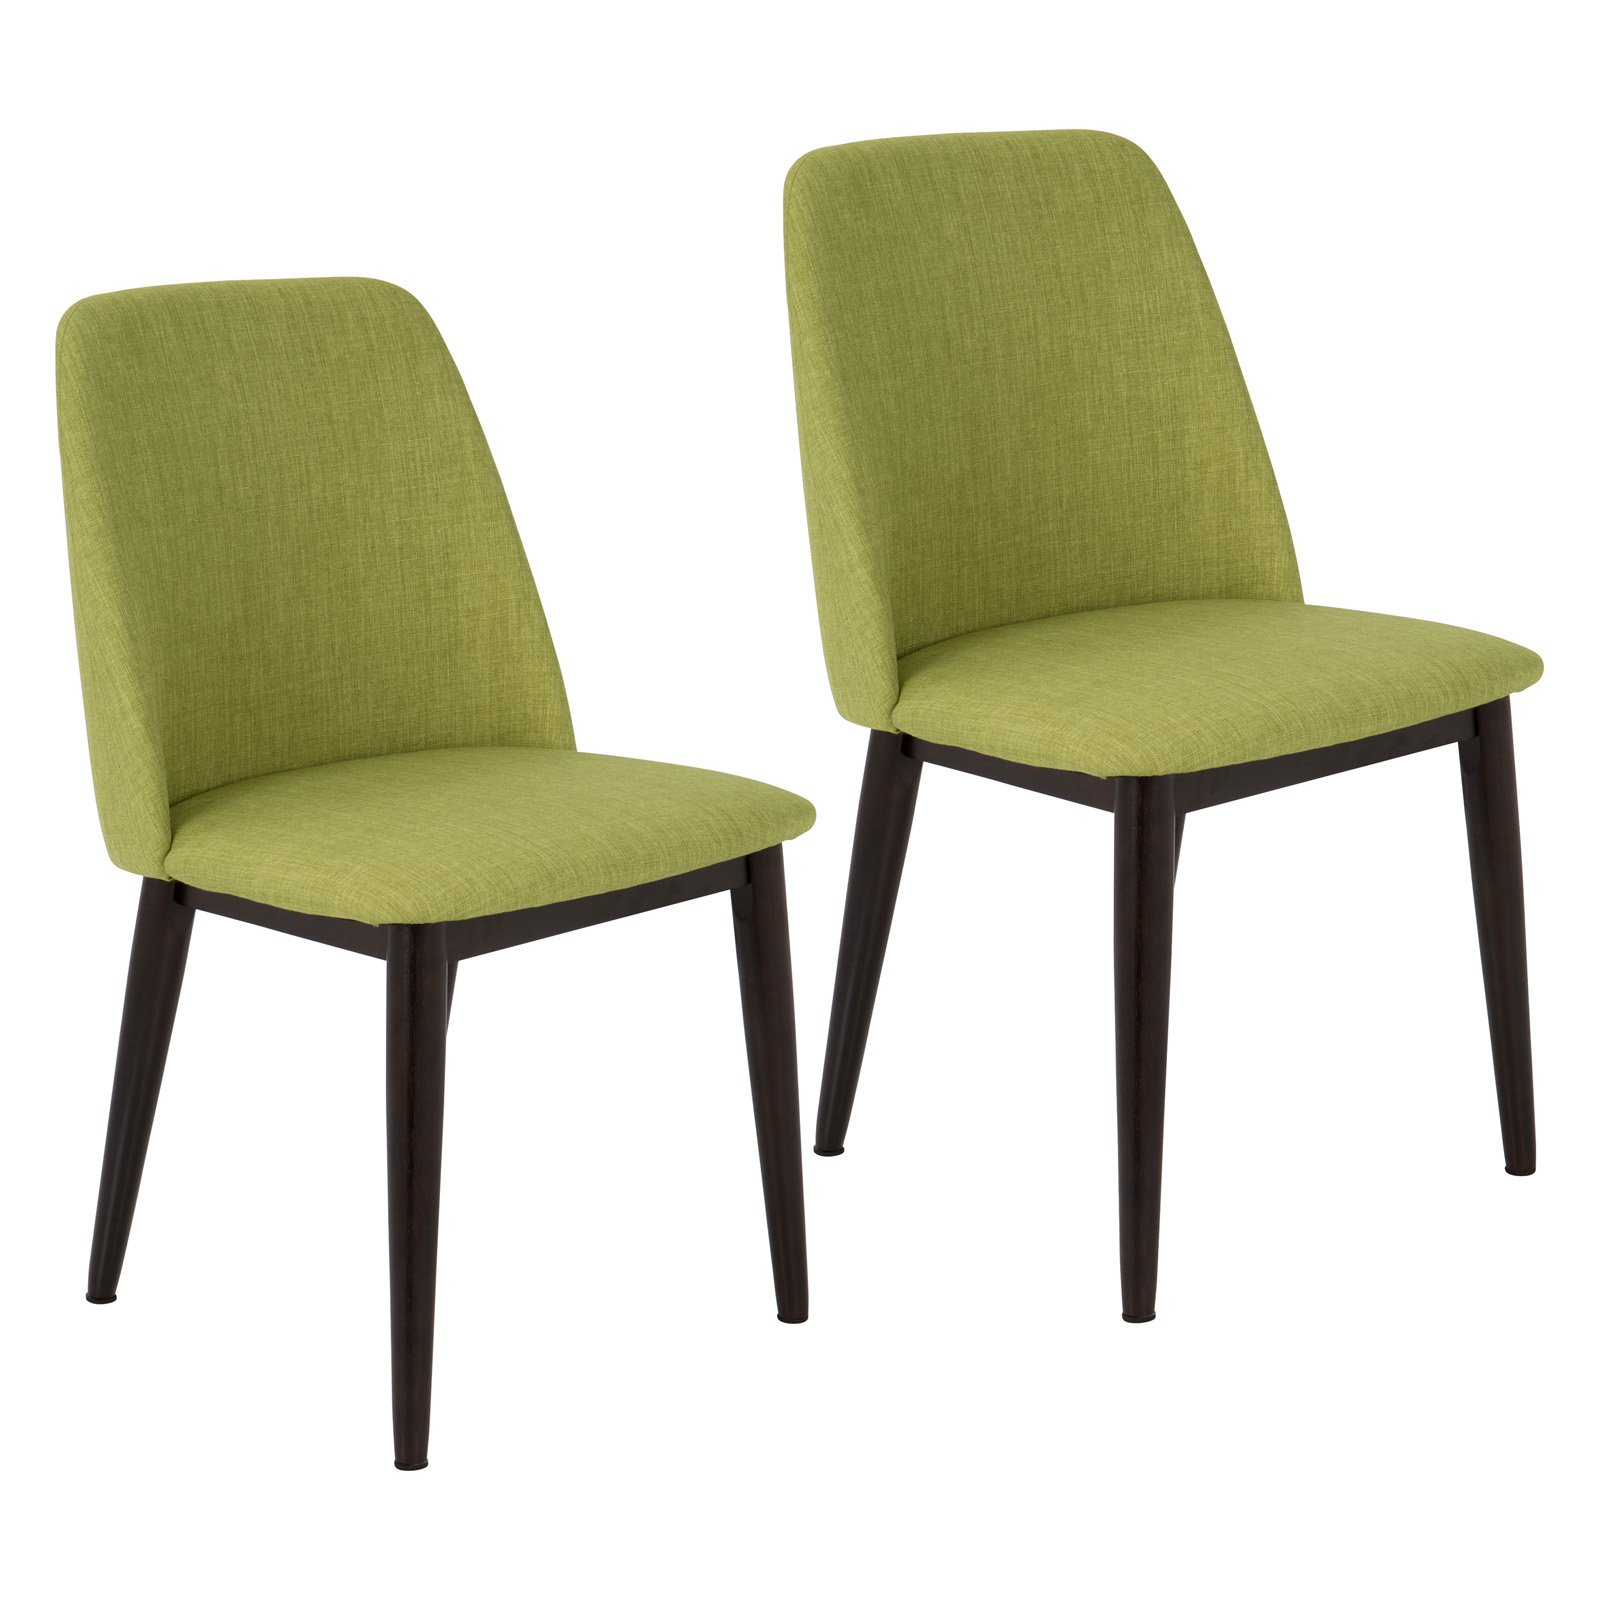 Tintori Contemporary Dining Chair In Green Fabric By LumiSource   Set Of 2